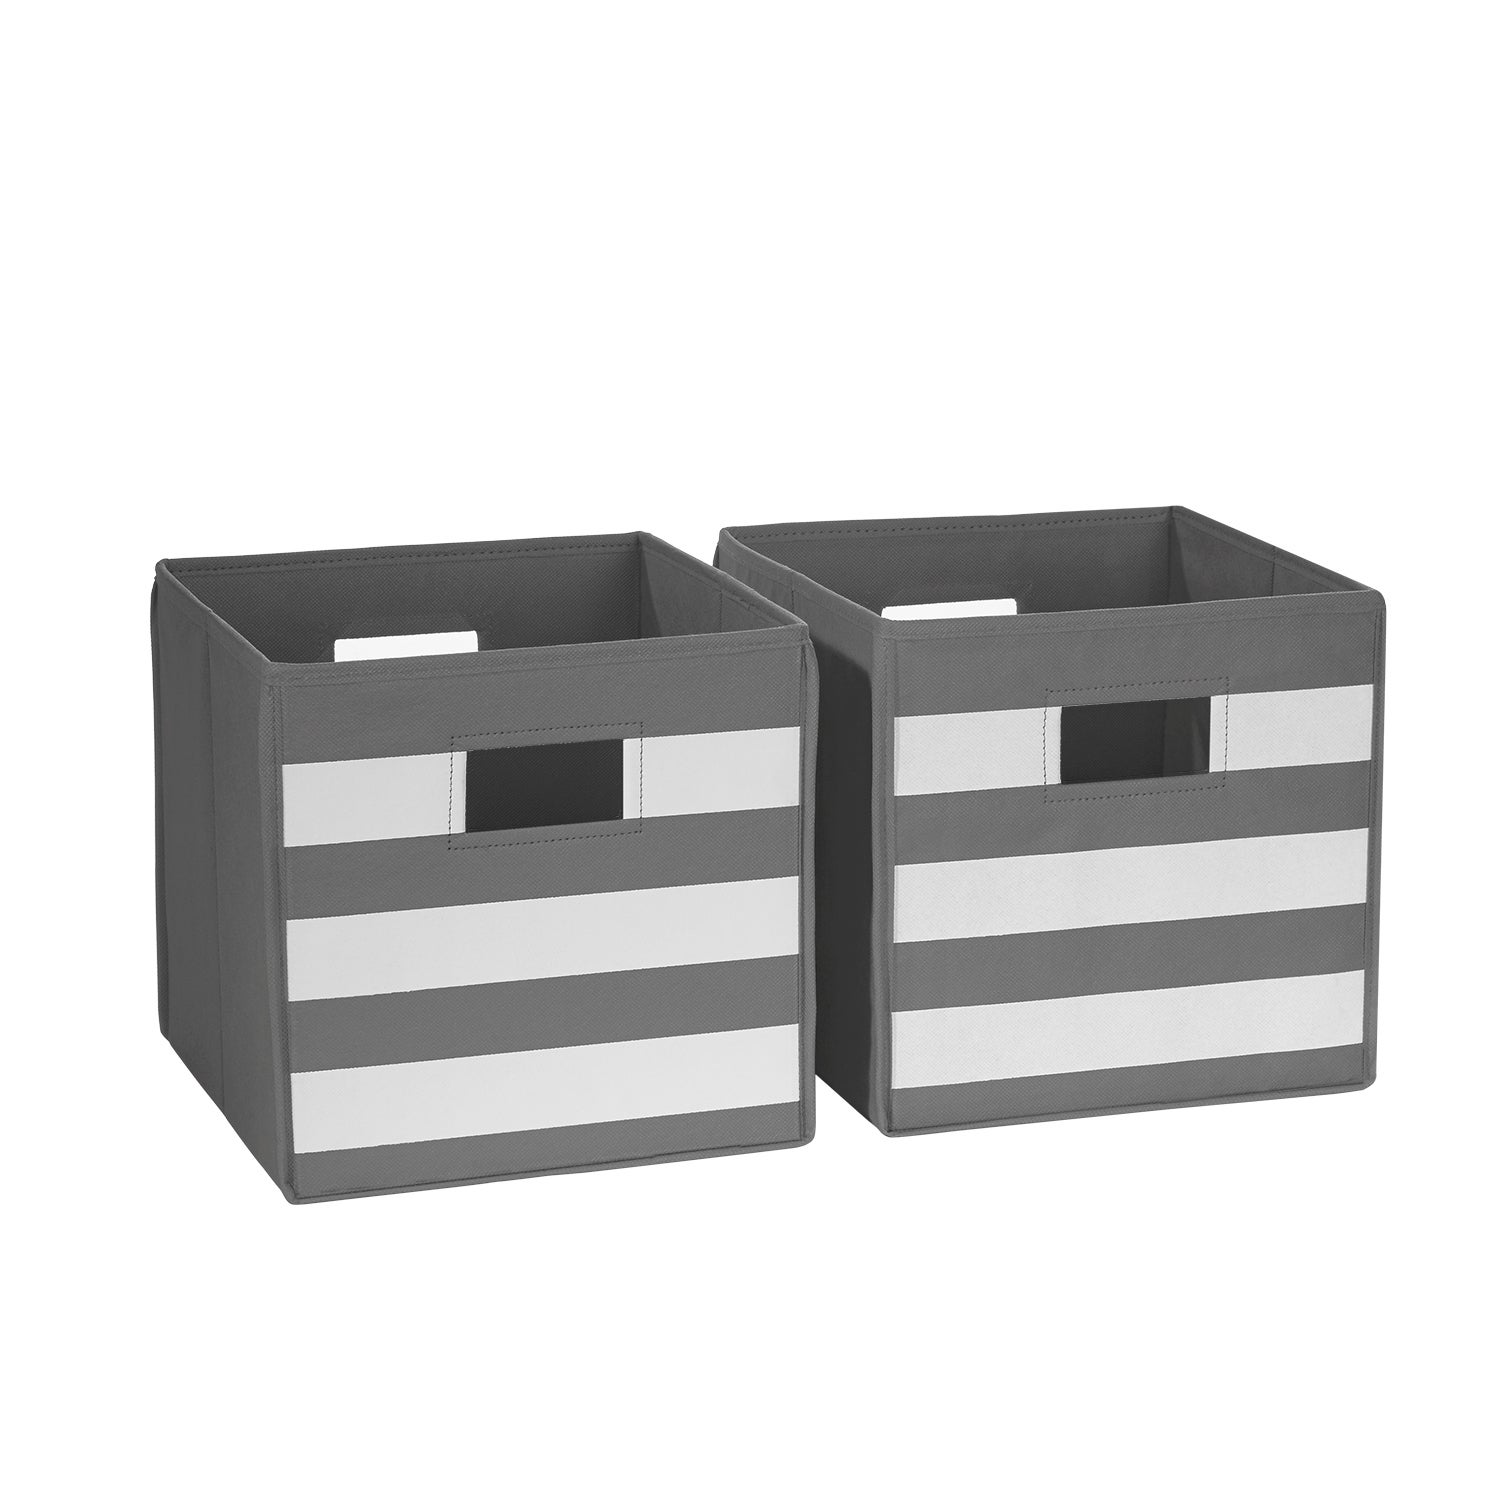 Delicieux Shop RiverRidge Kids Folding Storage Bins With Handles (Set Of 2)   Free  Shipping On Orders Over $45   Overstock.com   8352538